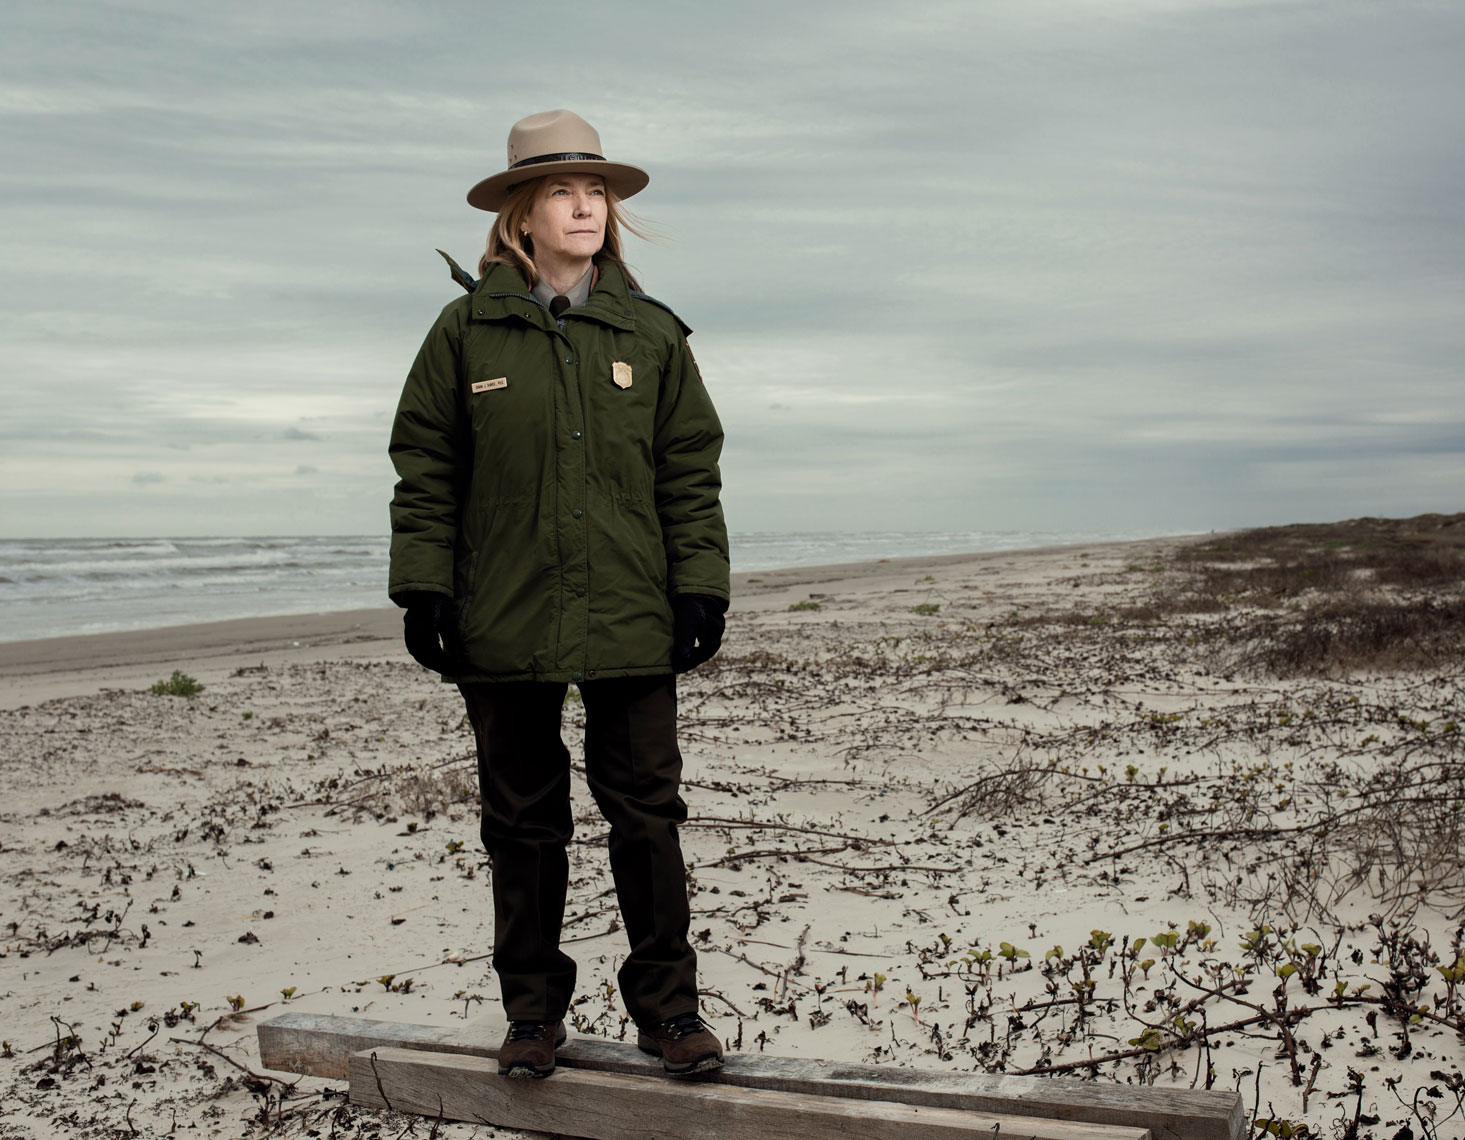 Dr. Donna Shaver from the National Parks at North Padre Island for The Houstonia. Photographed by Editorial and Commercial photographer Josh Huskin.